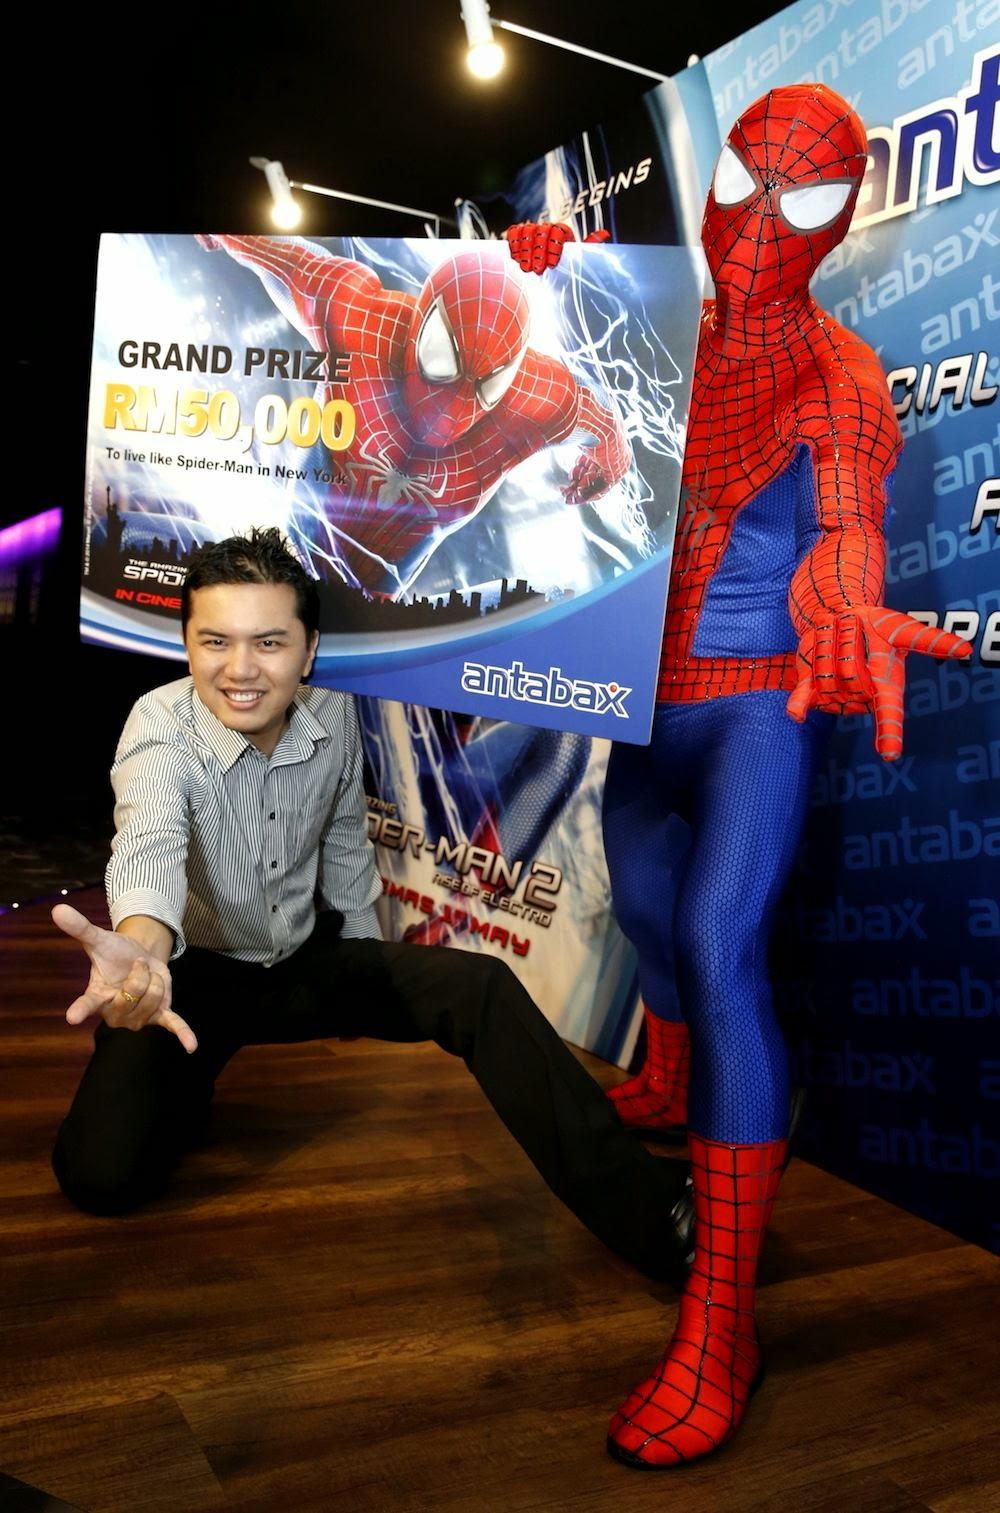 image-spiderman-2-antabax-contest-grand-prize-winner